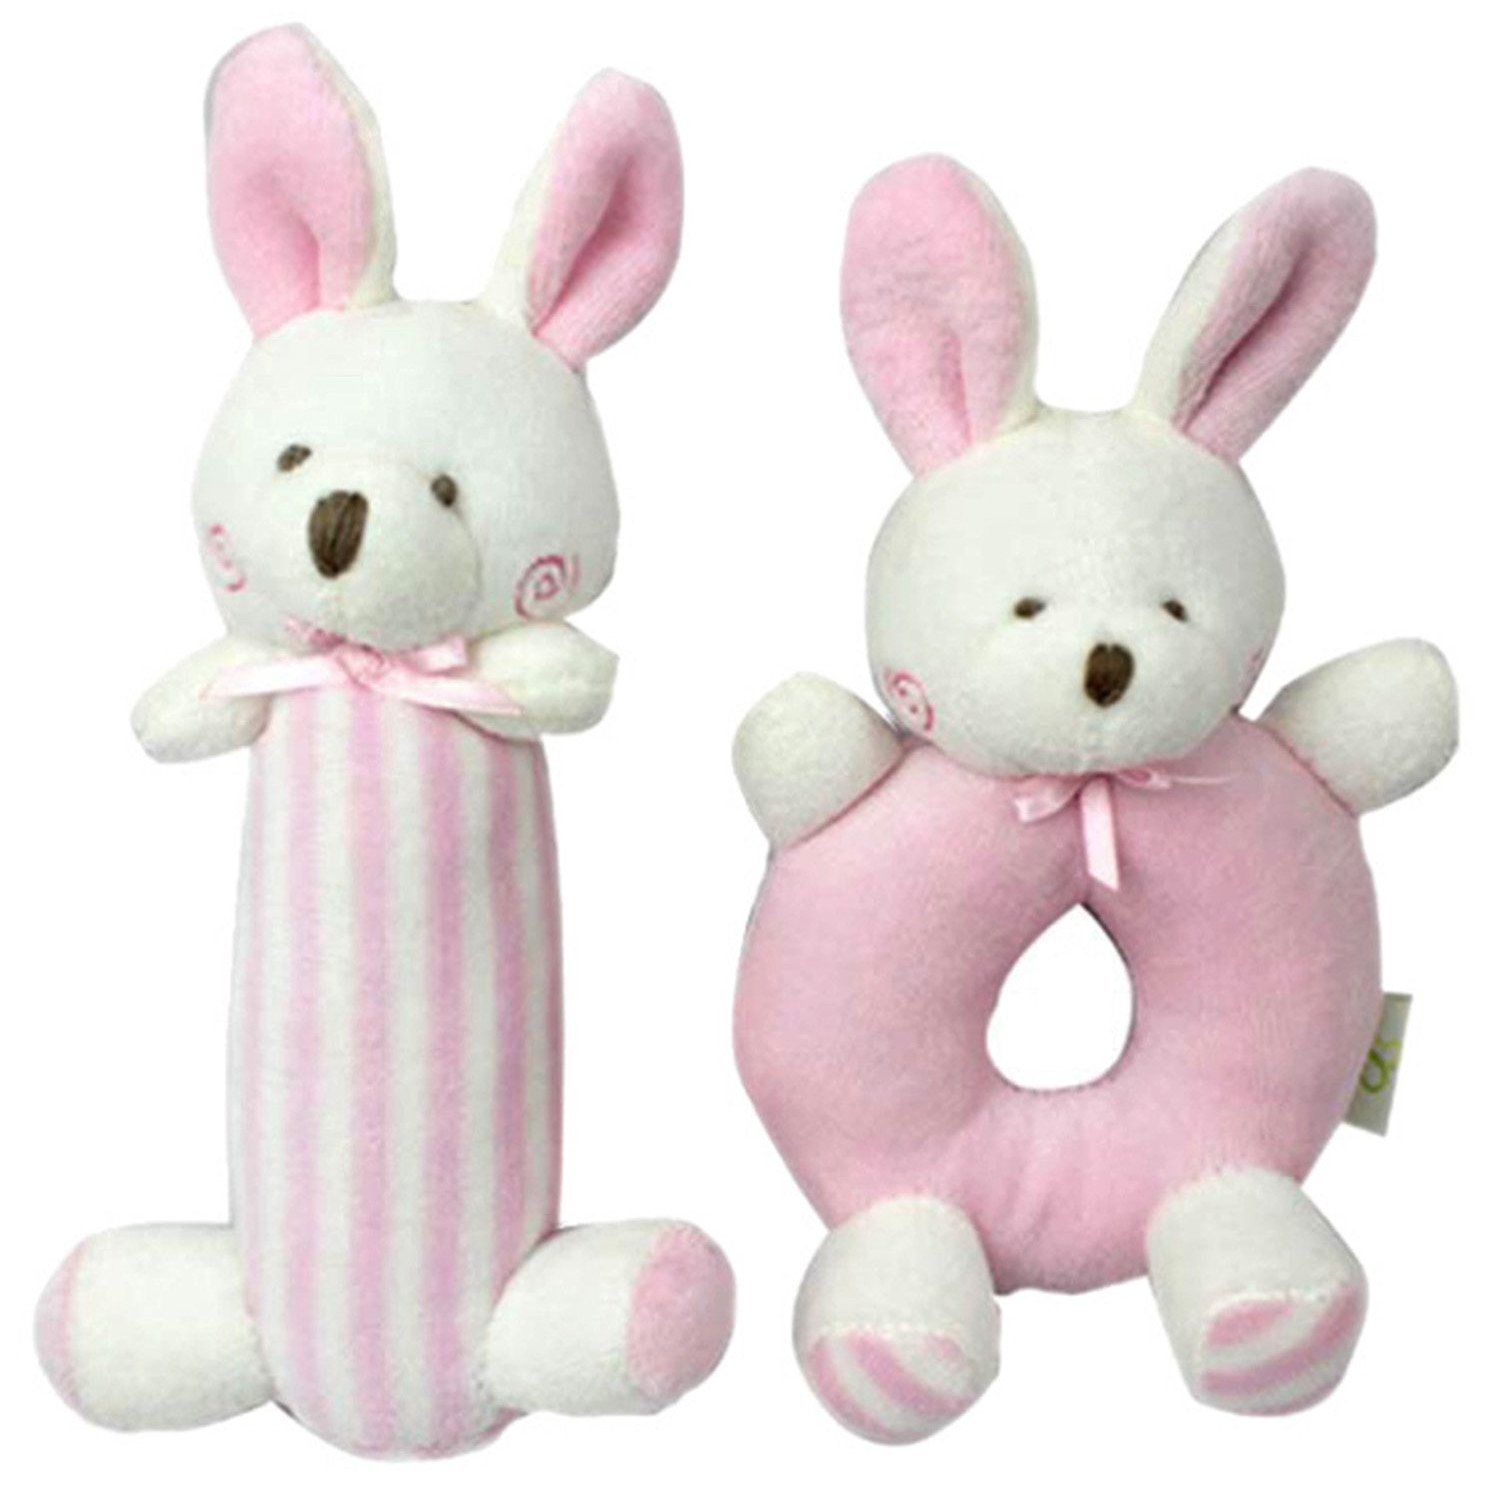 Amazleer Soft Baby Rattle Plush Sensory Activity Toy Grasping Ring Bell Rattles Baby Girl Gifts Baby Boy Hand Grasp Toys (Pink Bunny)